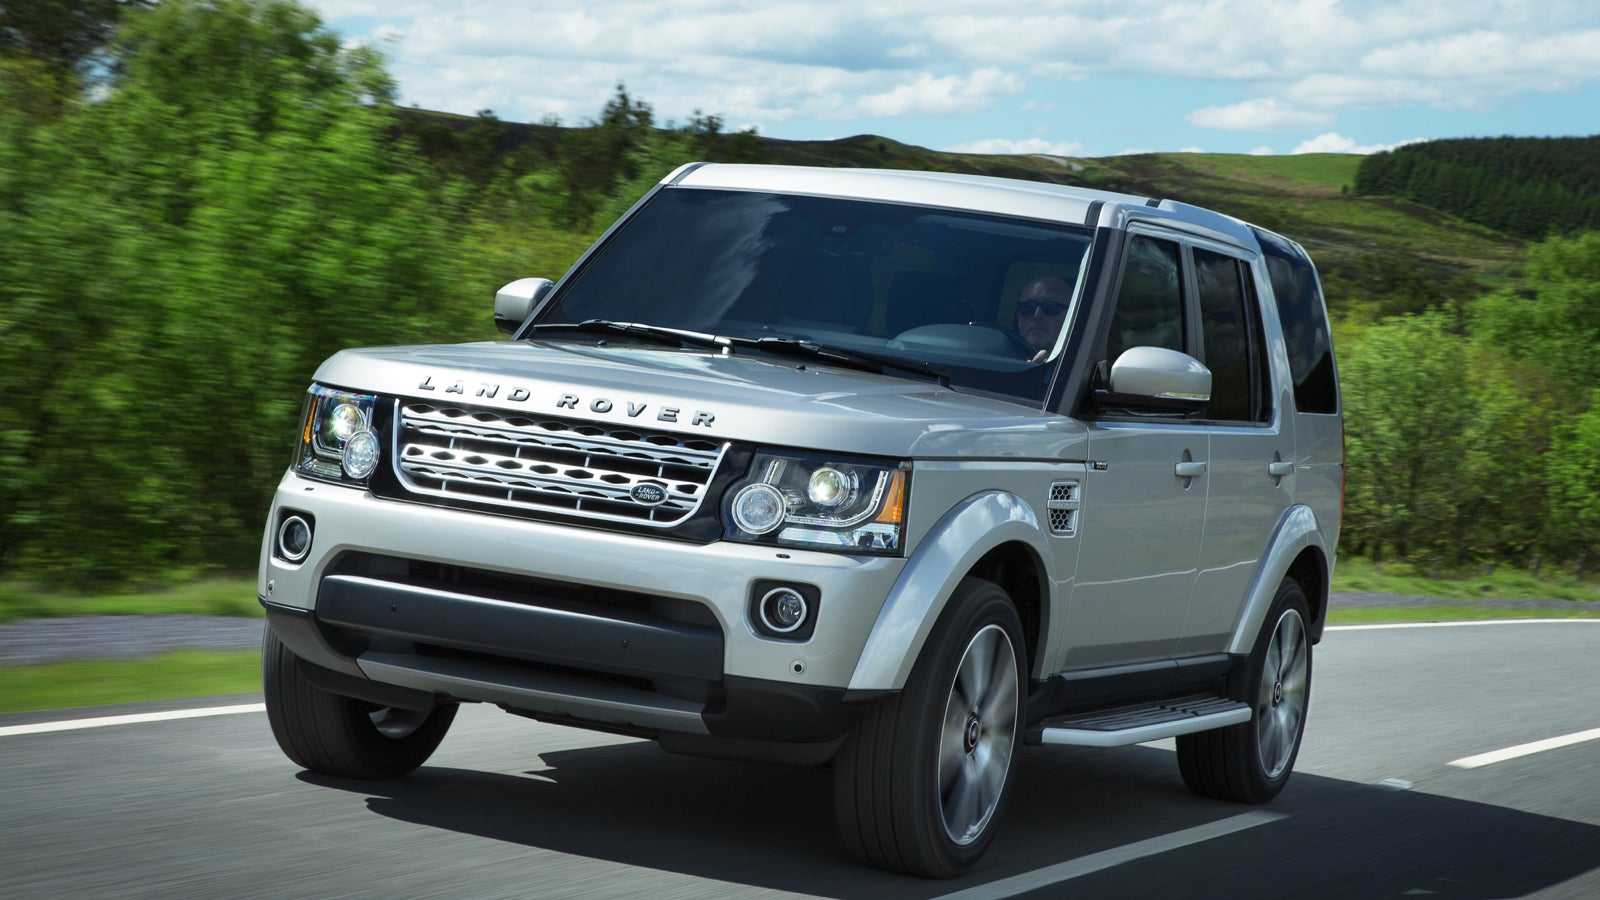 land rover lr4 the ultimate buyer s guide rh jalopnik com 2007 Land Rover LR4 2008 Land Rover LR4